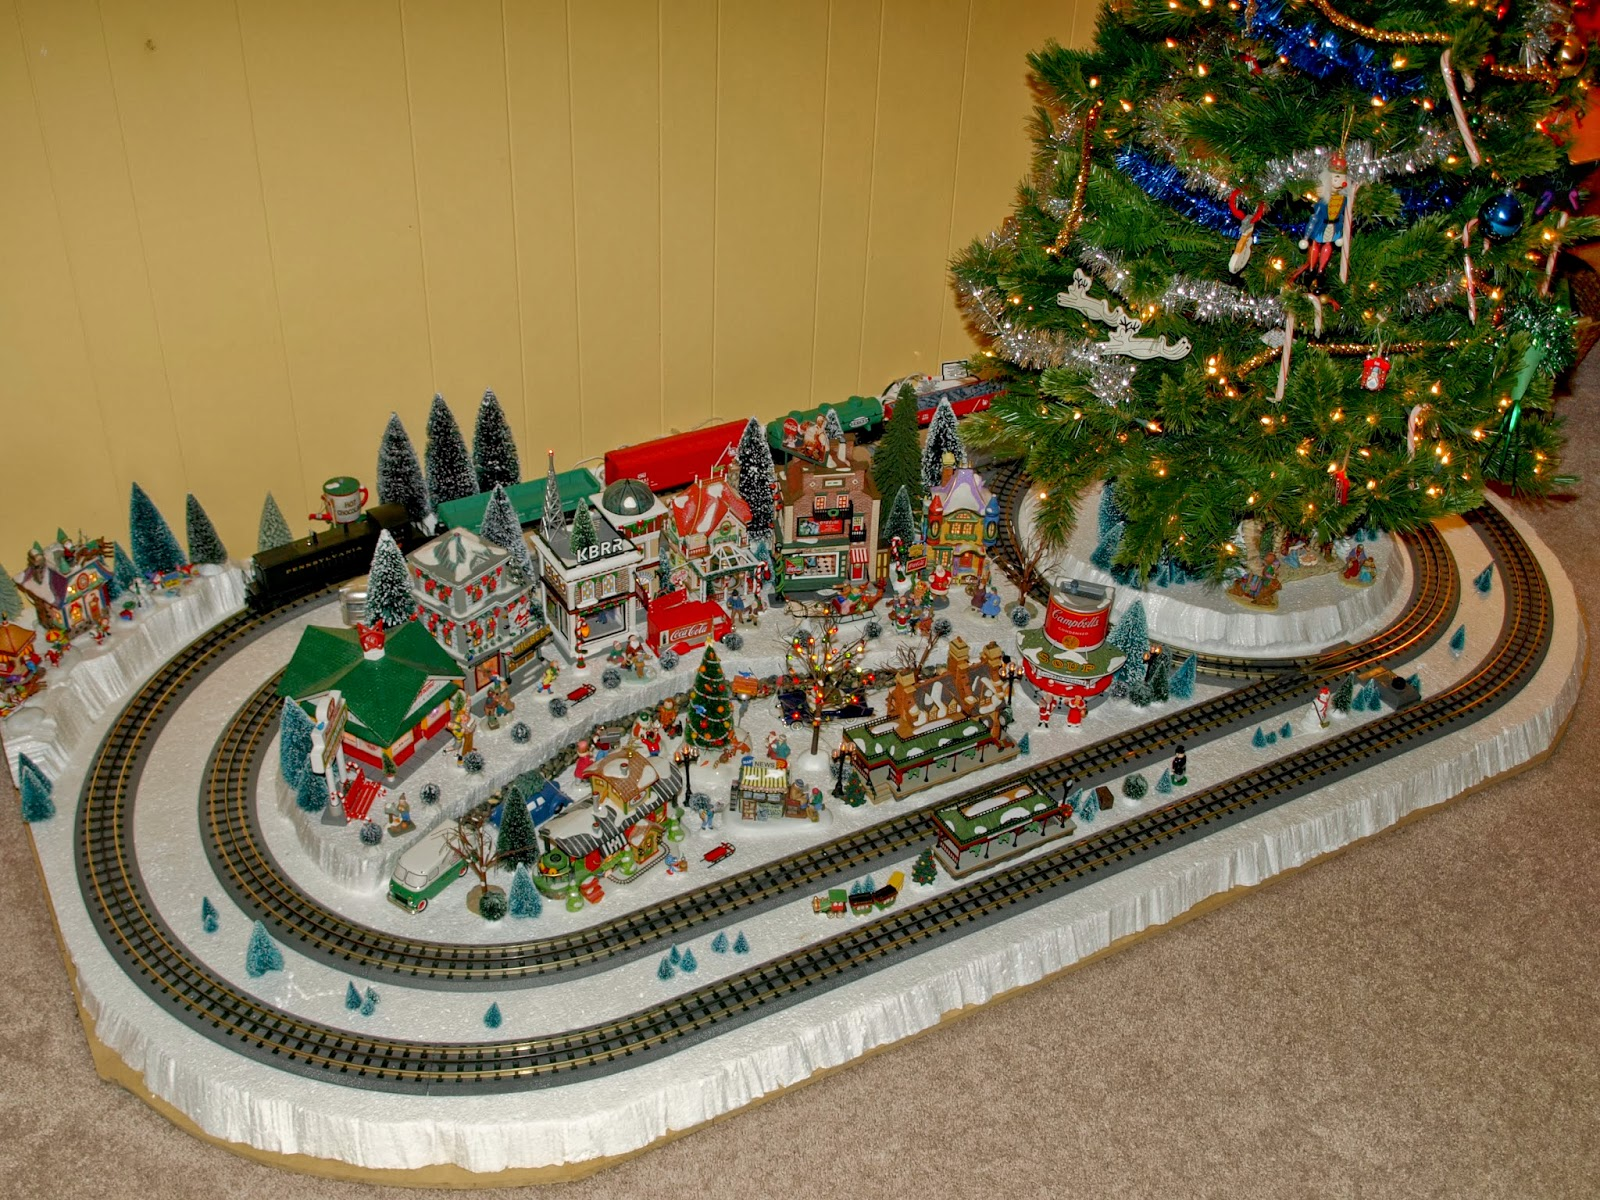 Chinook Hobby Talk: Guide to a Simple Train Around the Christmas Tree